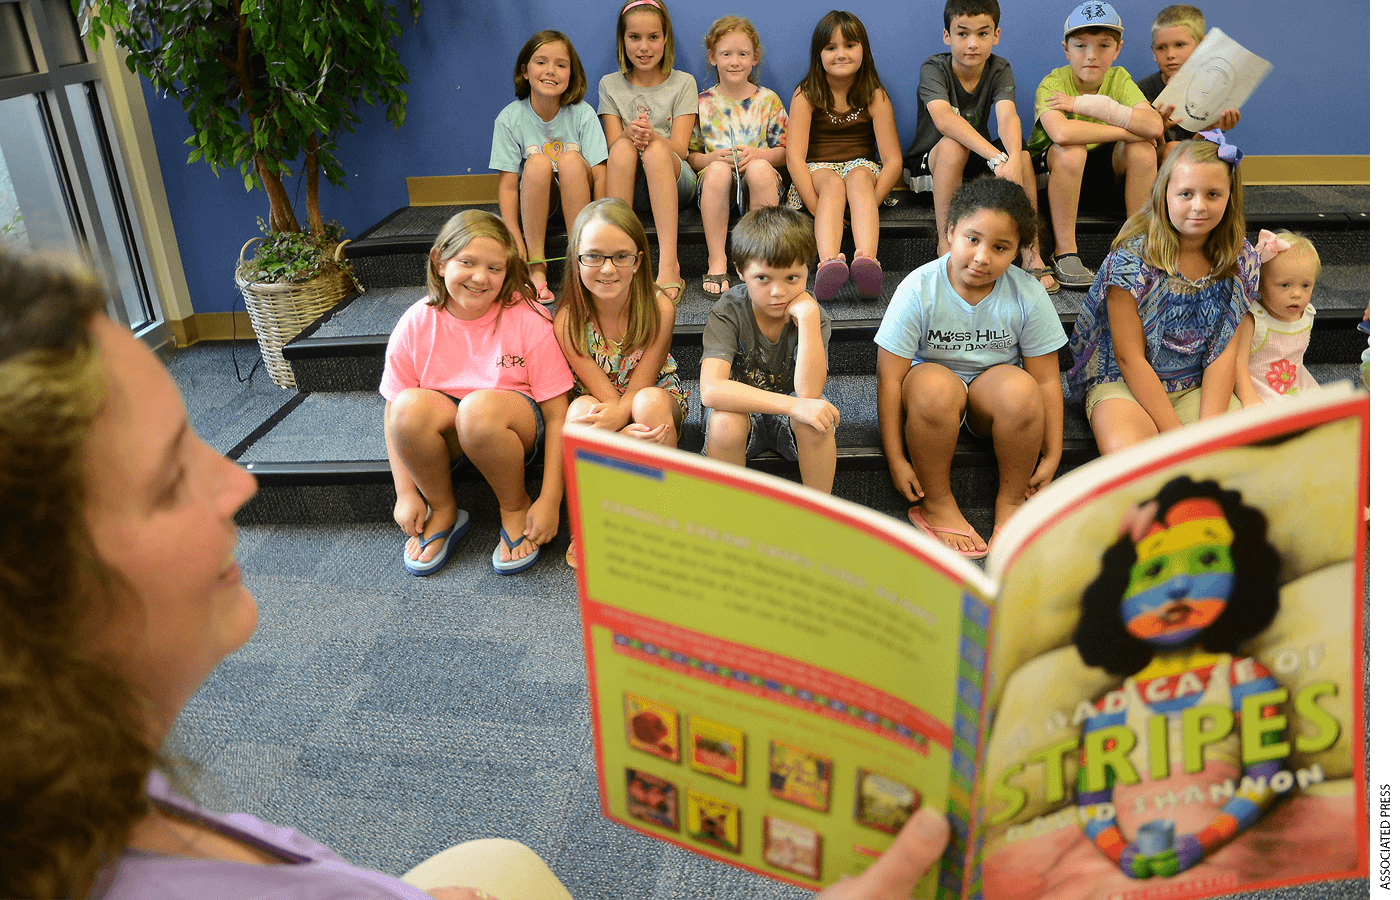 Summer reading camps, like the one shown here at Moss Hill Elementary School in Kinston, North Carolina, can mitigate learning loss.